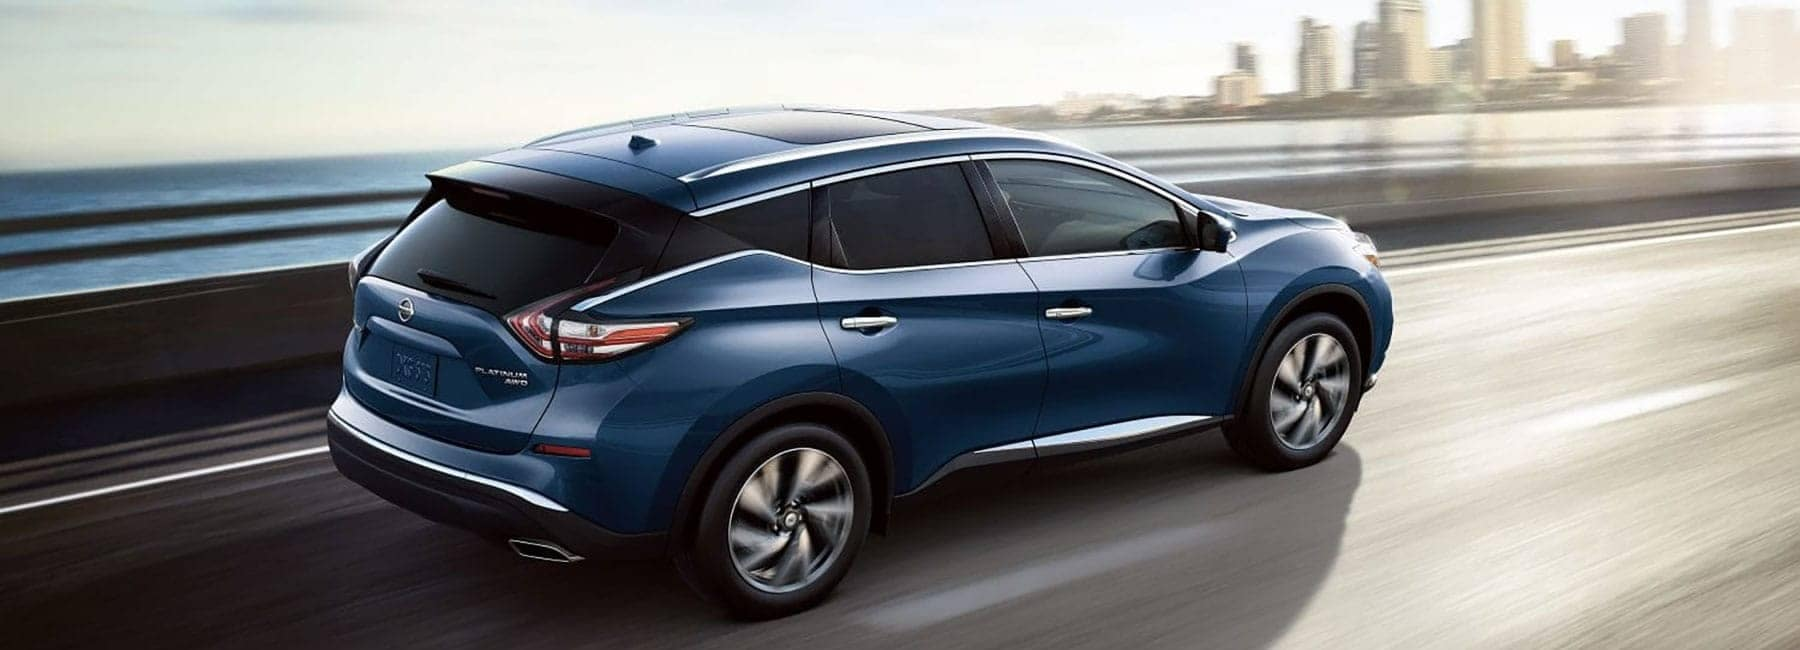 2018 Murano drives on highway alongside bay